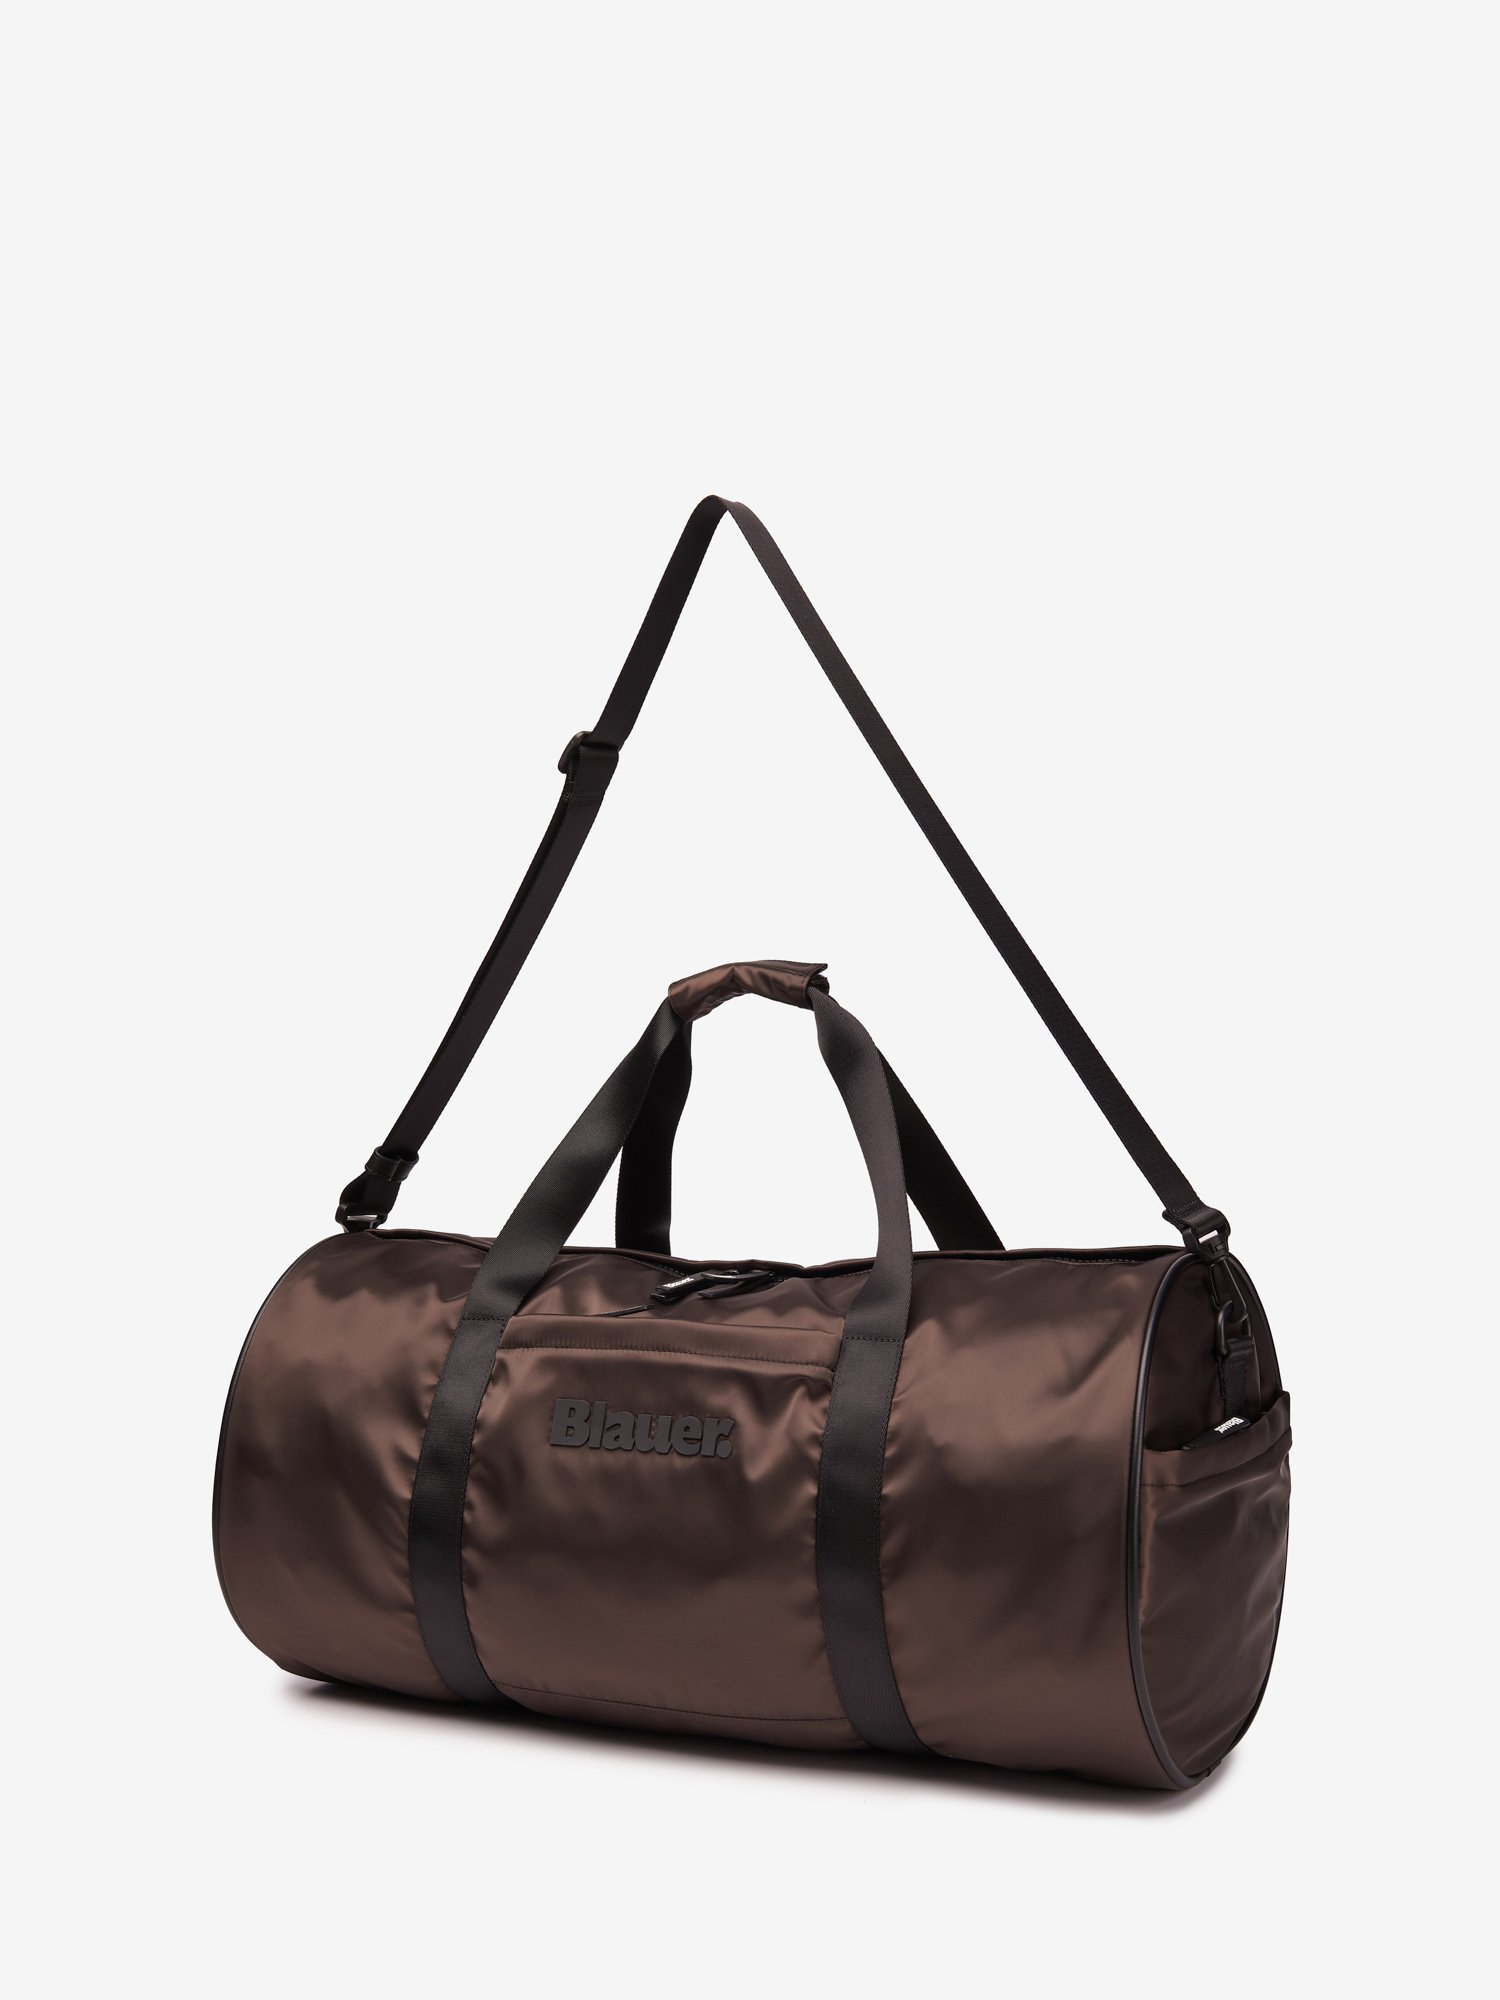 SKIN TRAVEL BAG - Blauer